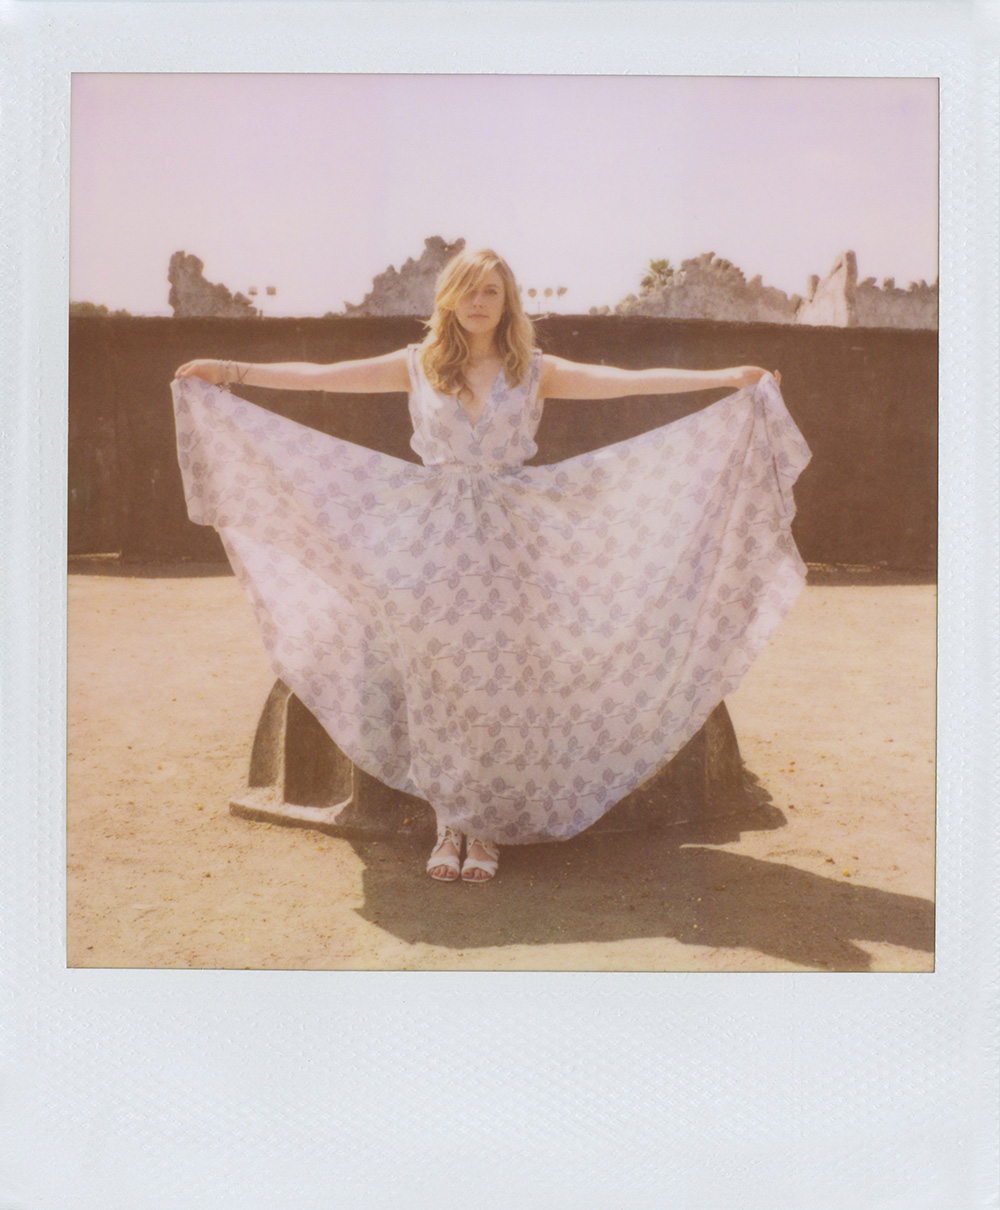 band-of-outsiders-greta-gerwig-polaroids-07